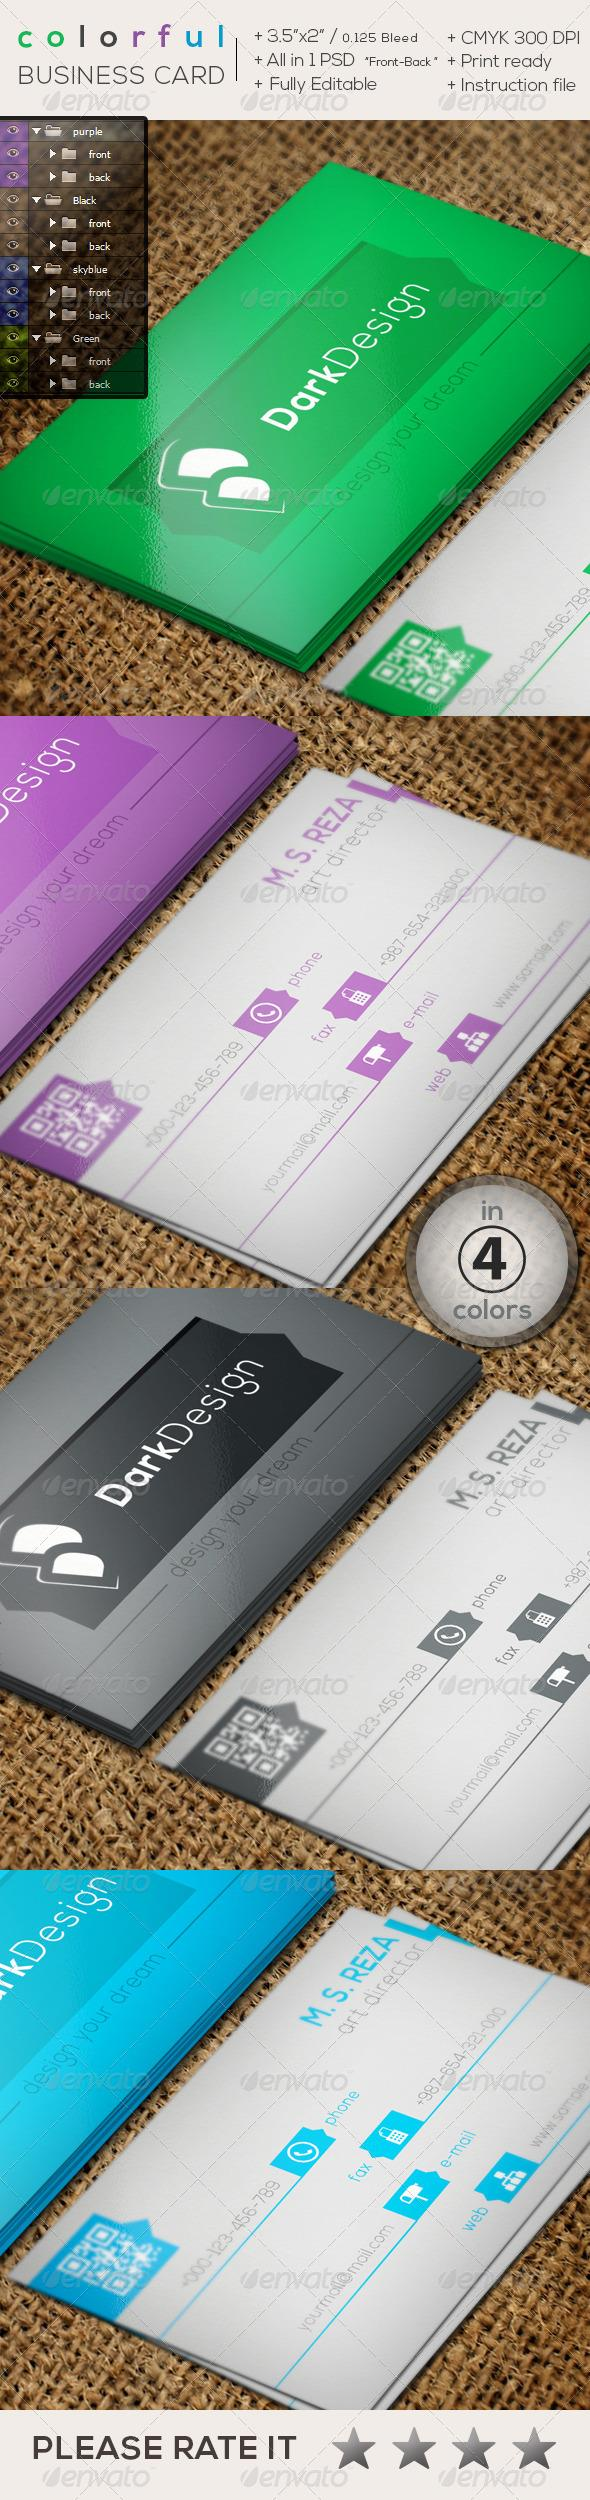 Colorful Creative Business Card Card Templates Business Cards - 35 x2 business card template